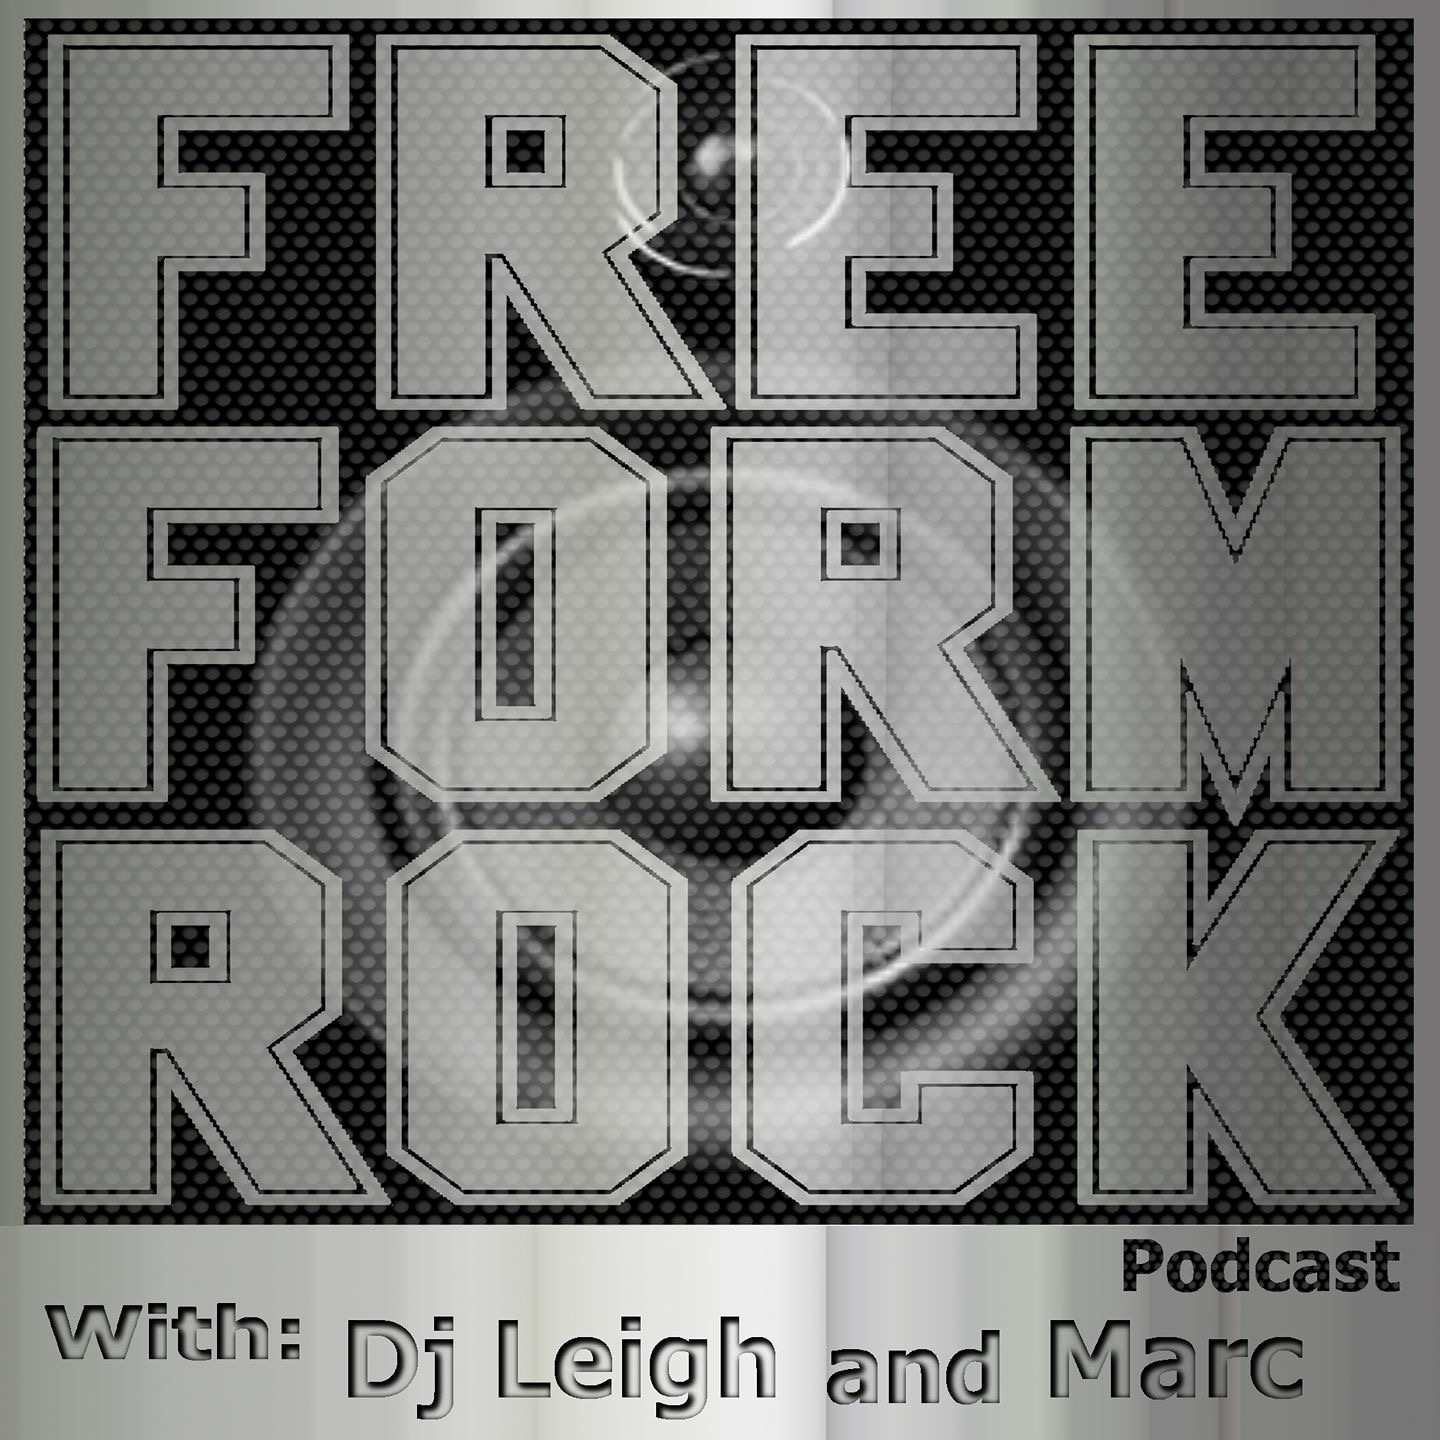 Free Form Rock Podcast With Dj Leigh And Marc